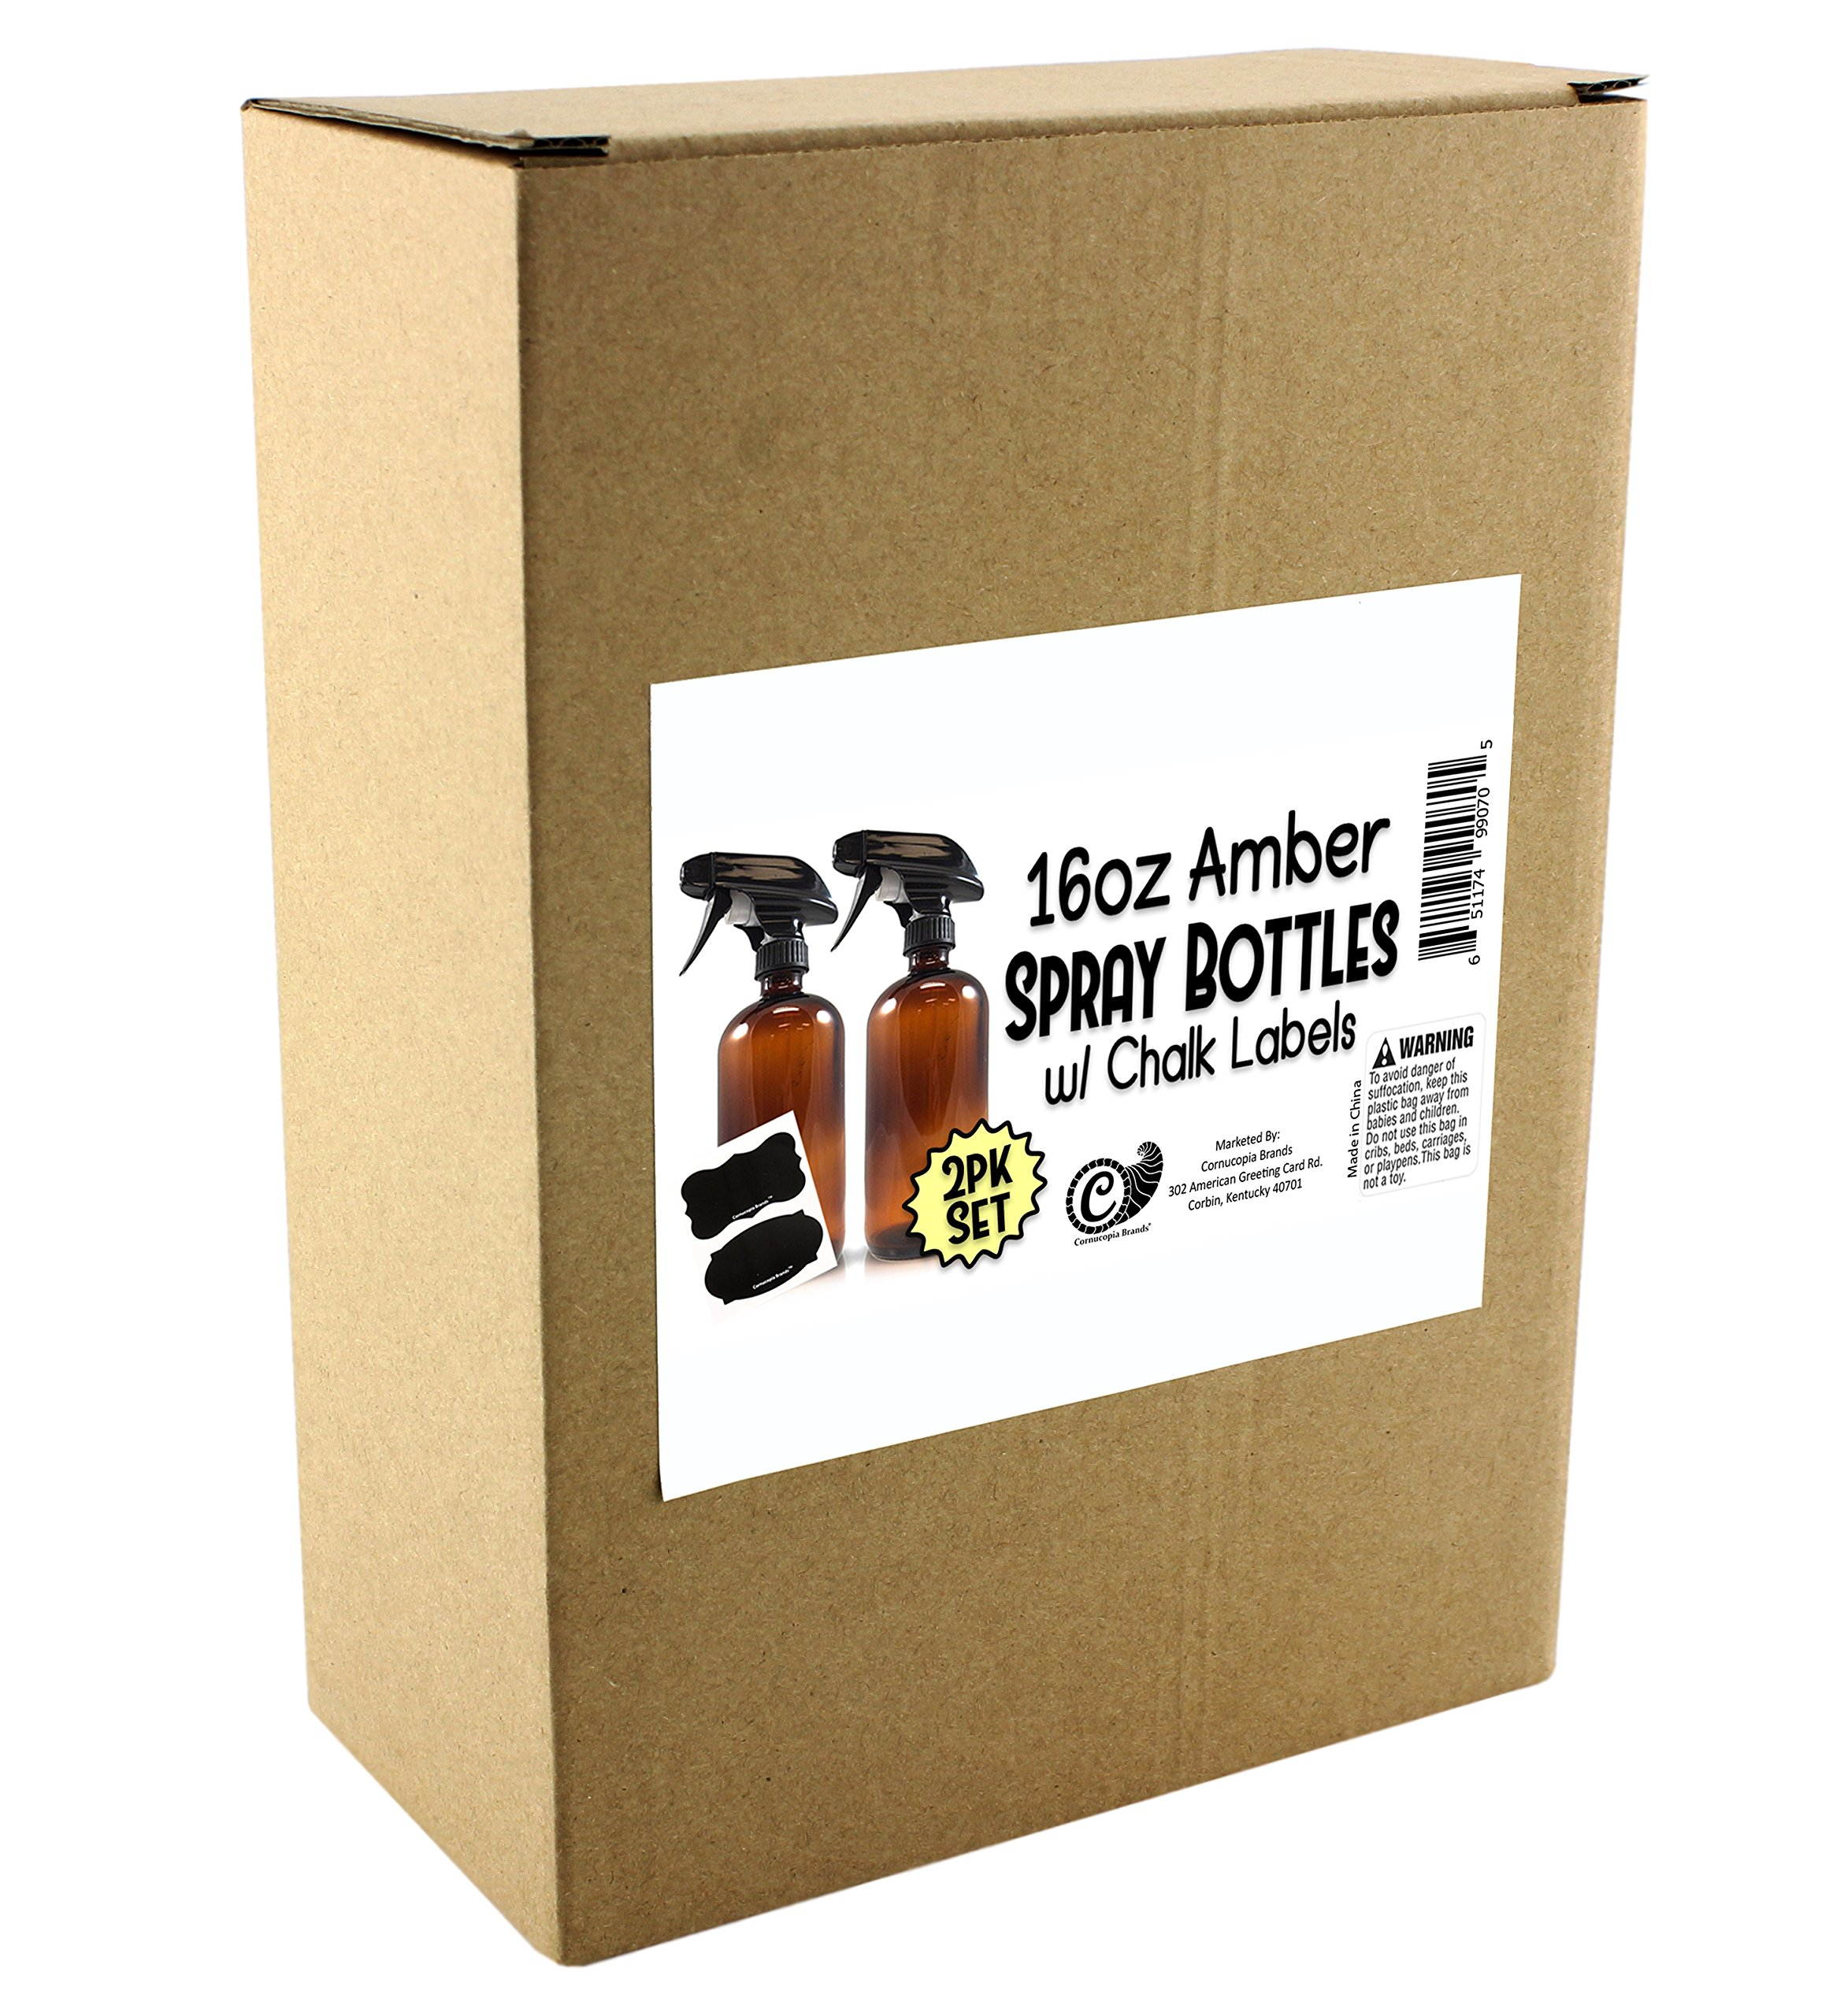 16-Ounce Amber Glass Spray Bottles w/Reusable Chalk Labels (2 Pack), Heavy Duty Mist & Stream 3-Setting Sprayer; Great for Essential Oils by Cornucopia Brands (Image #8)